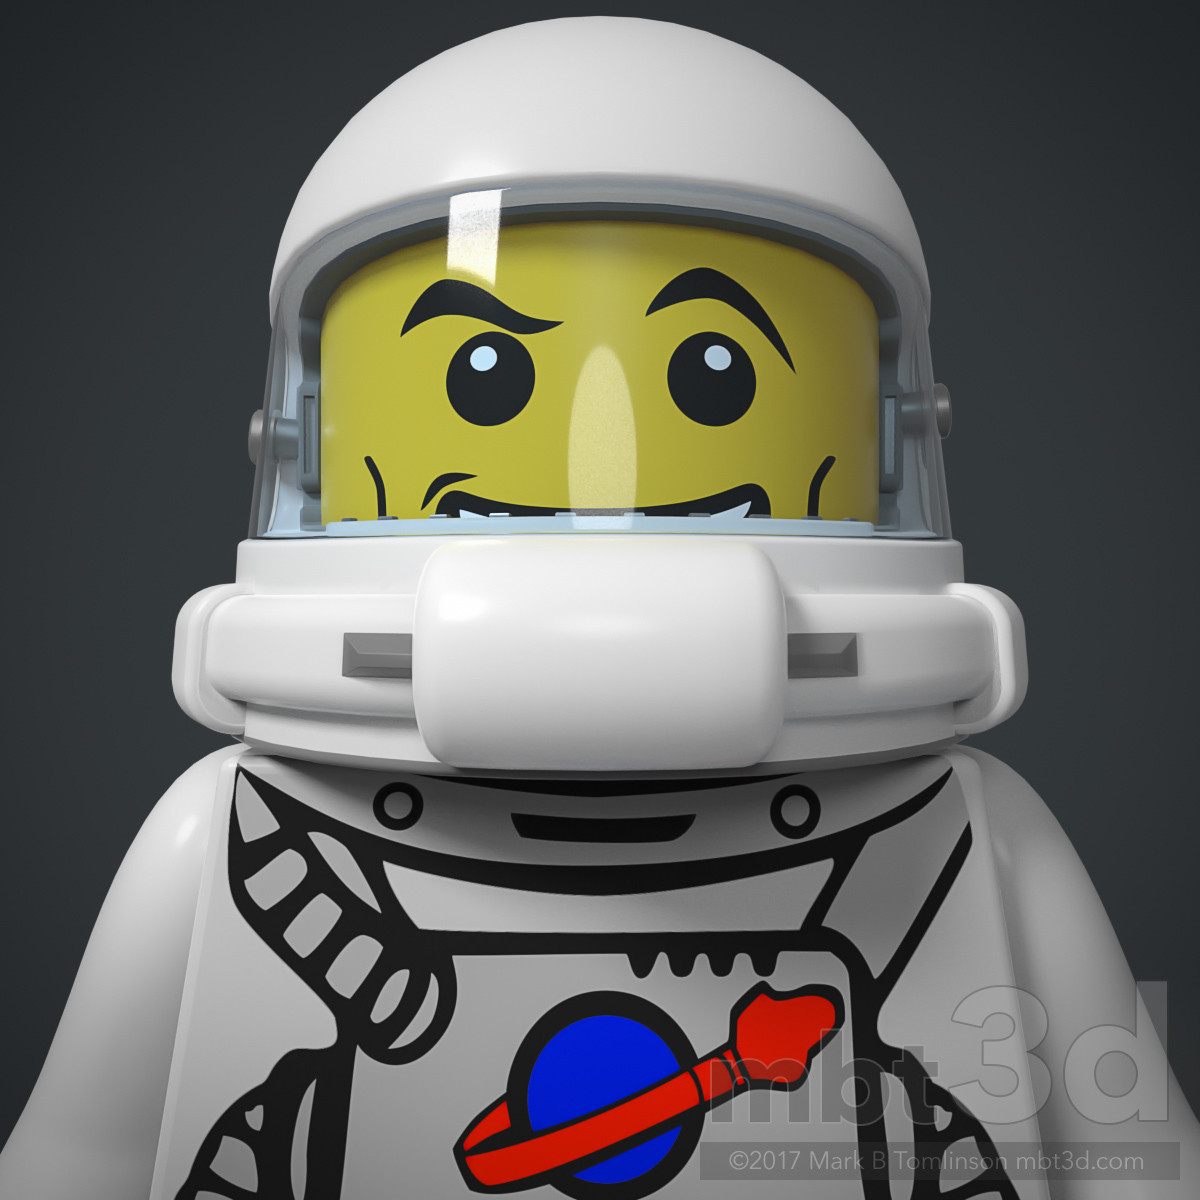 Mark b tomlinson minifig spaceman 12